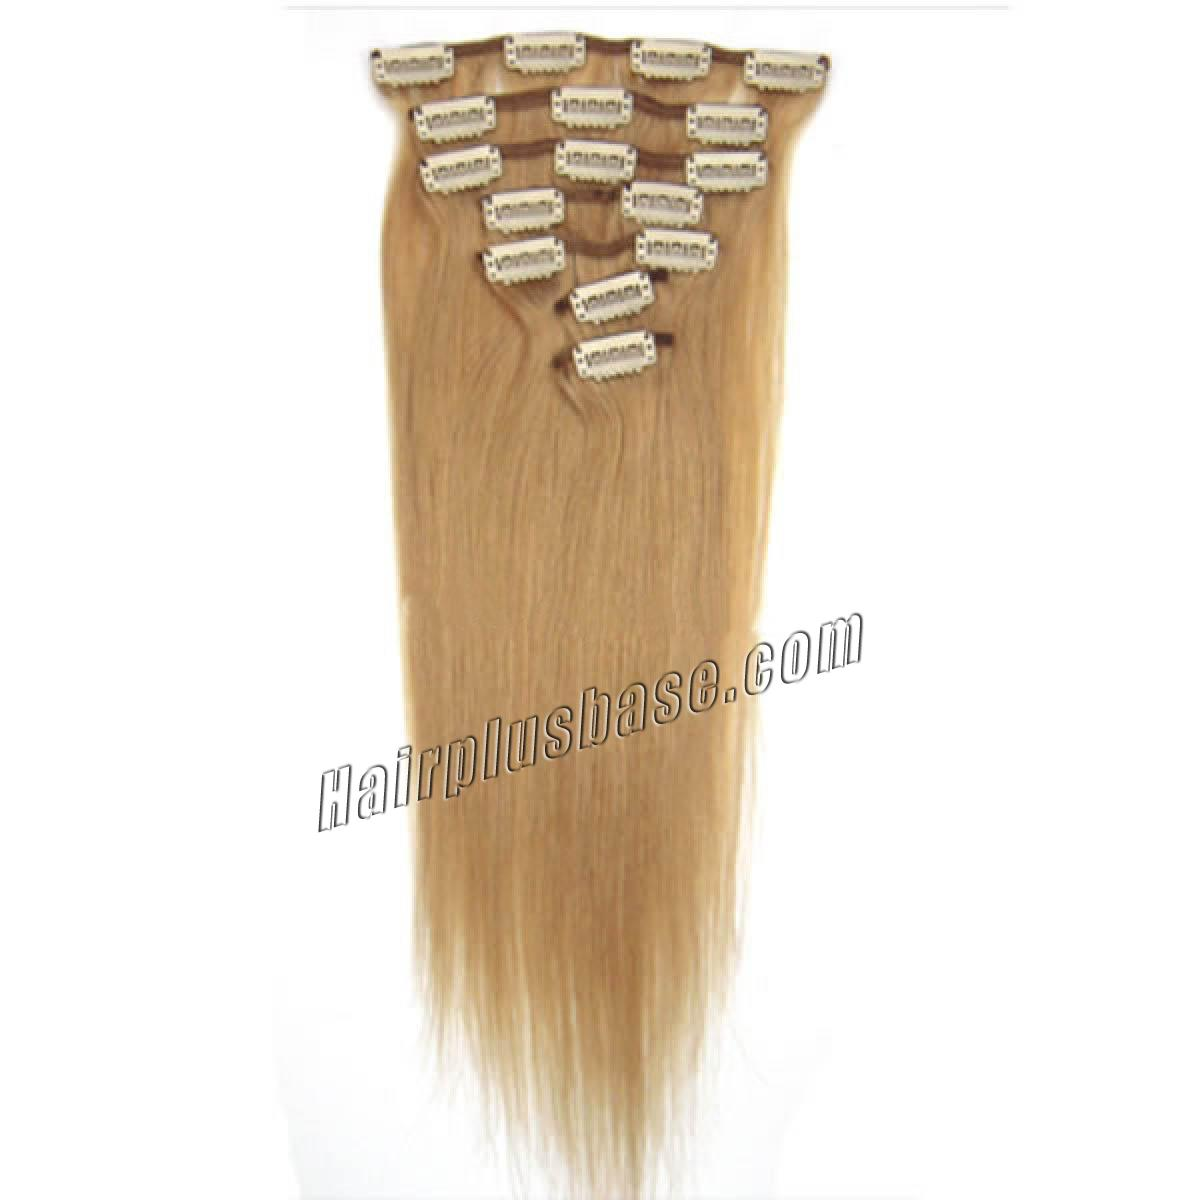 15 Inch #27 Strawberry Blonde Clip In Human Hair Extensions 7pcs no 2